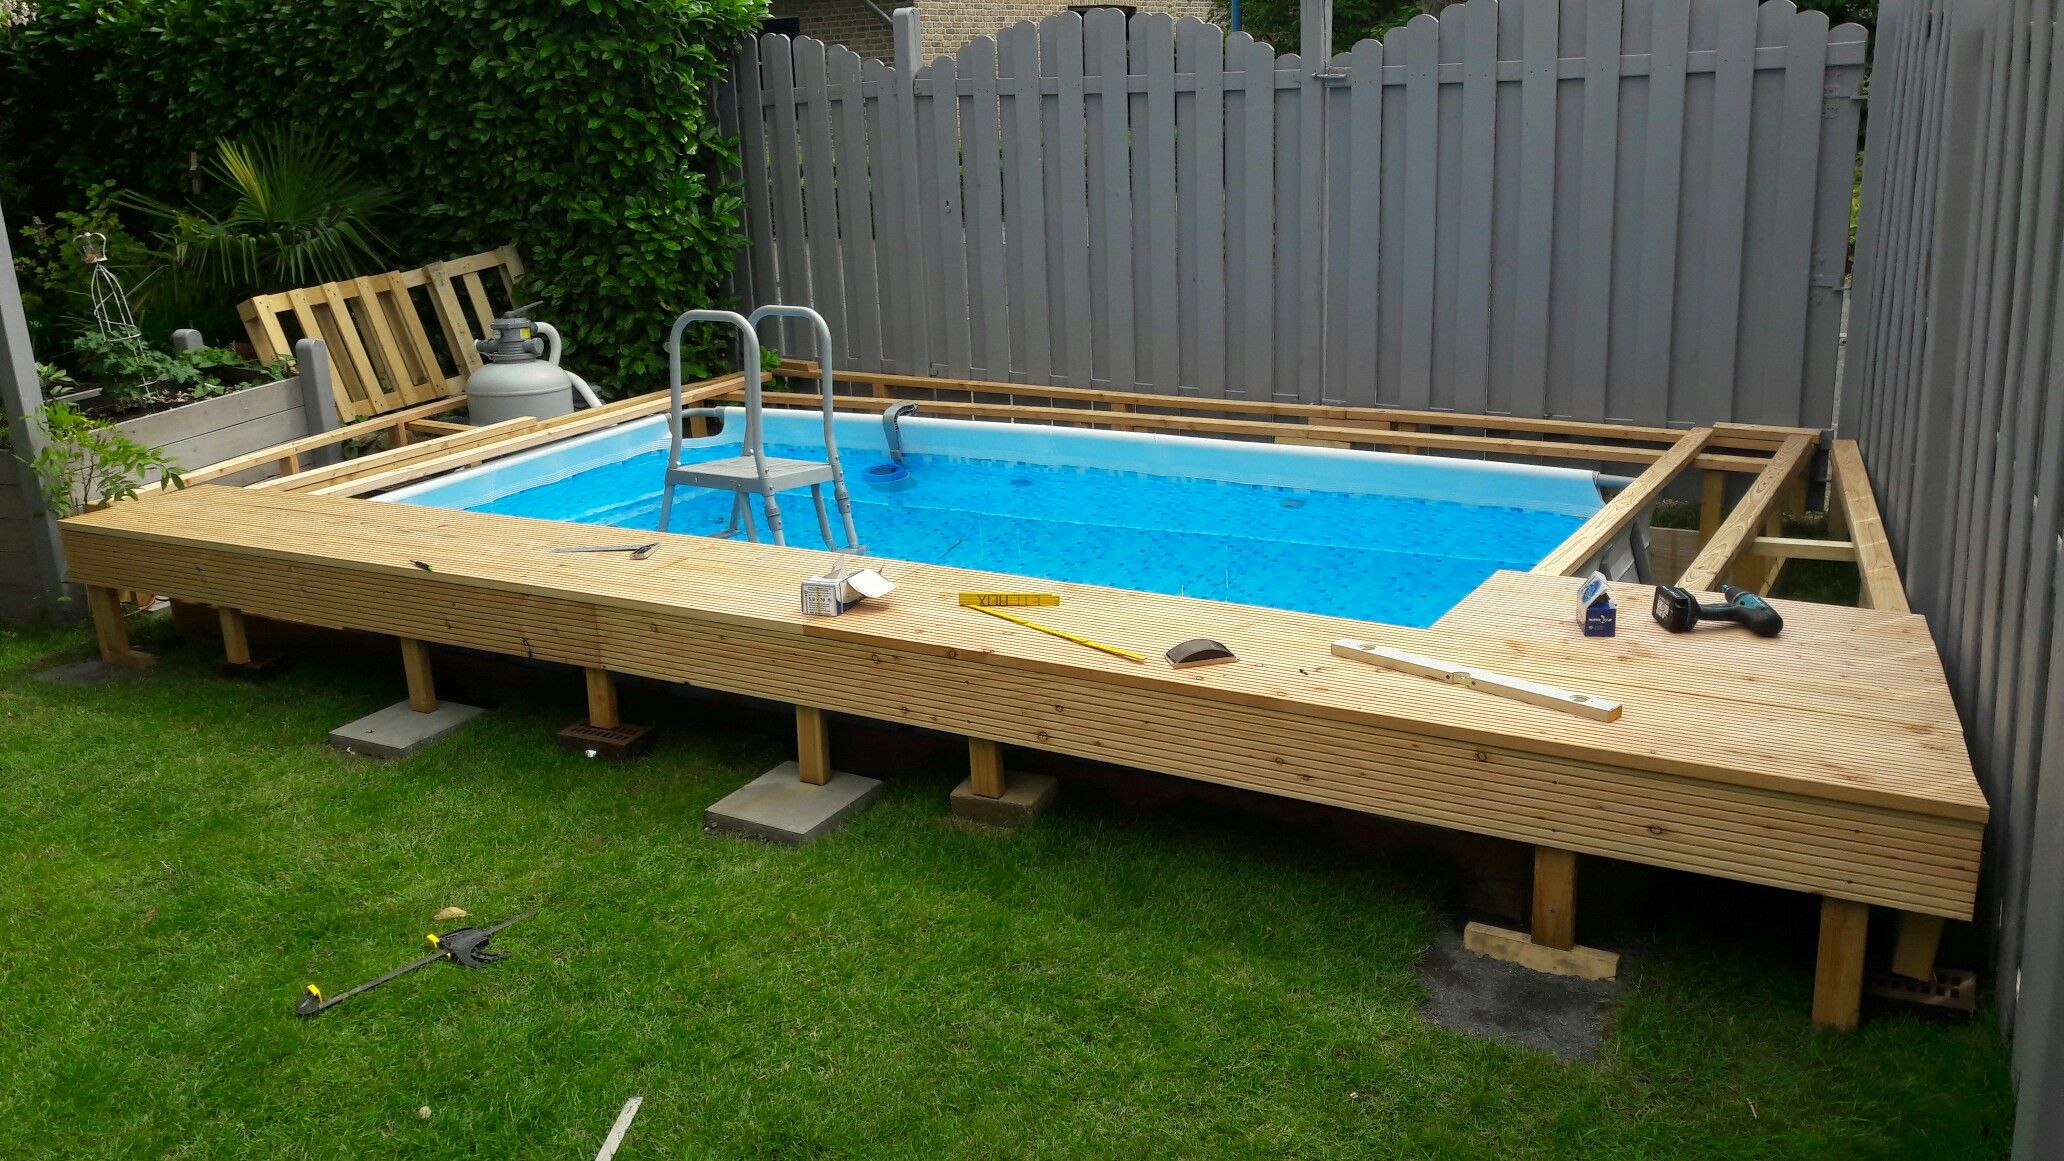 Pin By Ashley Seyford On Backyard Diy Swimming Pool Small Backyard Pools Backyard Pool Designs